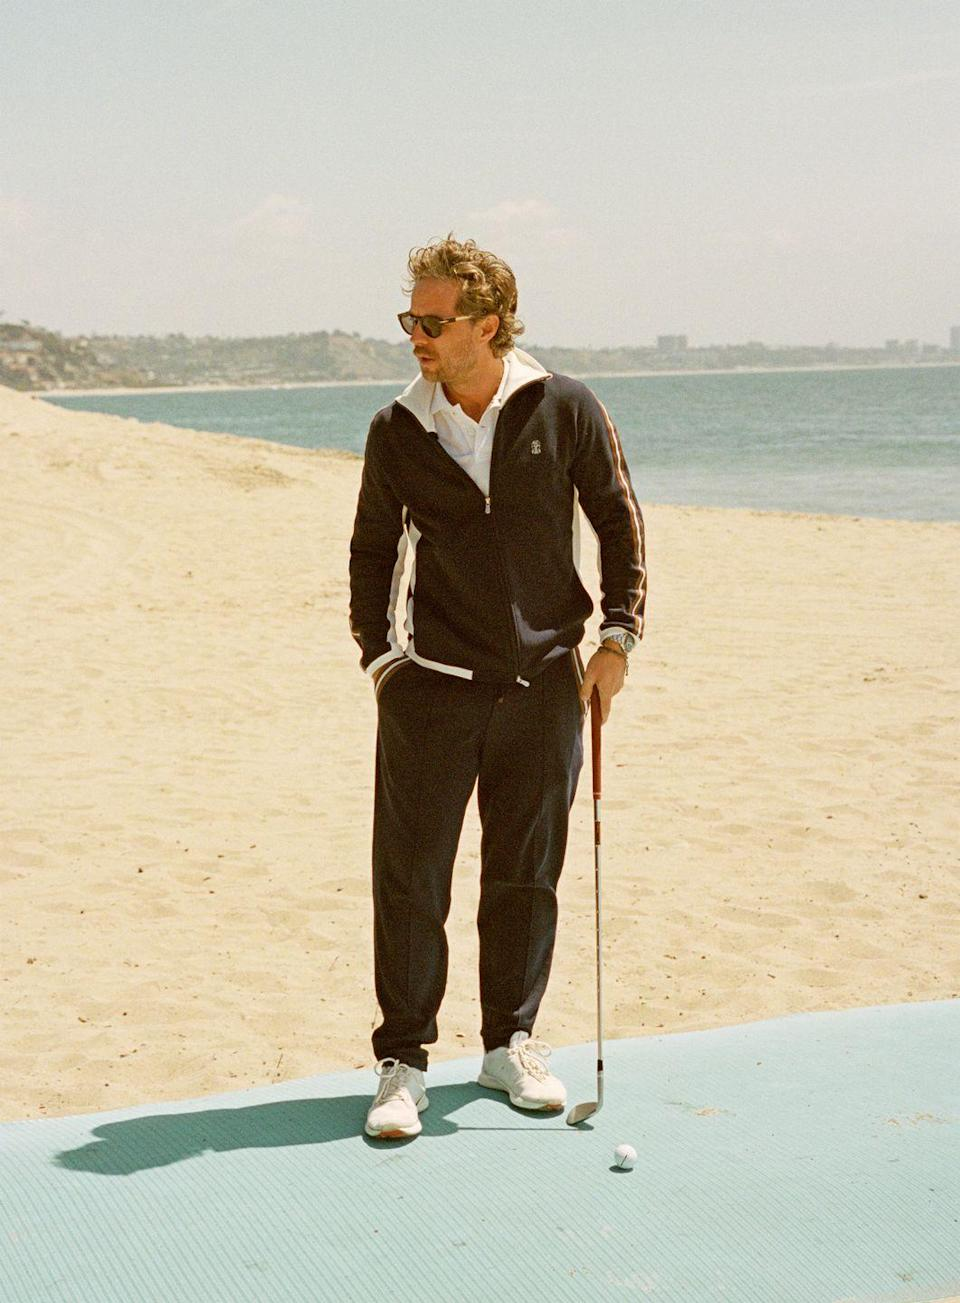 """<p>Like we said, it's not all polos and trousers now. A tracksuit on the course is welcome, so long as it's as put-together as this one. </p><p><em>Jacket, polo, and trousers by Brunello Cucinelli.</em></p><p><a class=""""link rapid-noclick-resp"""" href=""""https://shop.brunellocucinelli.com/en-us/"""" rel=""""nofollow noopener"""" target=""""_blank"""" data-ylk=""""slk:Shop Brunello Cucinelli"""">Shop Brunello Cucinelli</a></p>"""